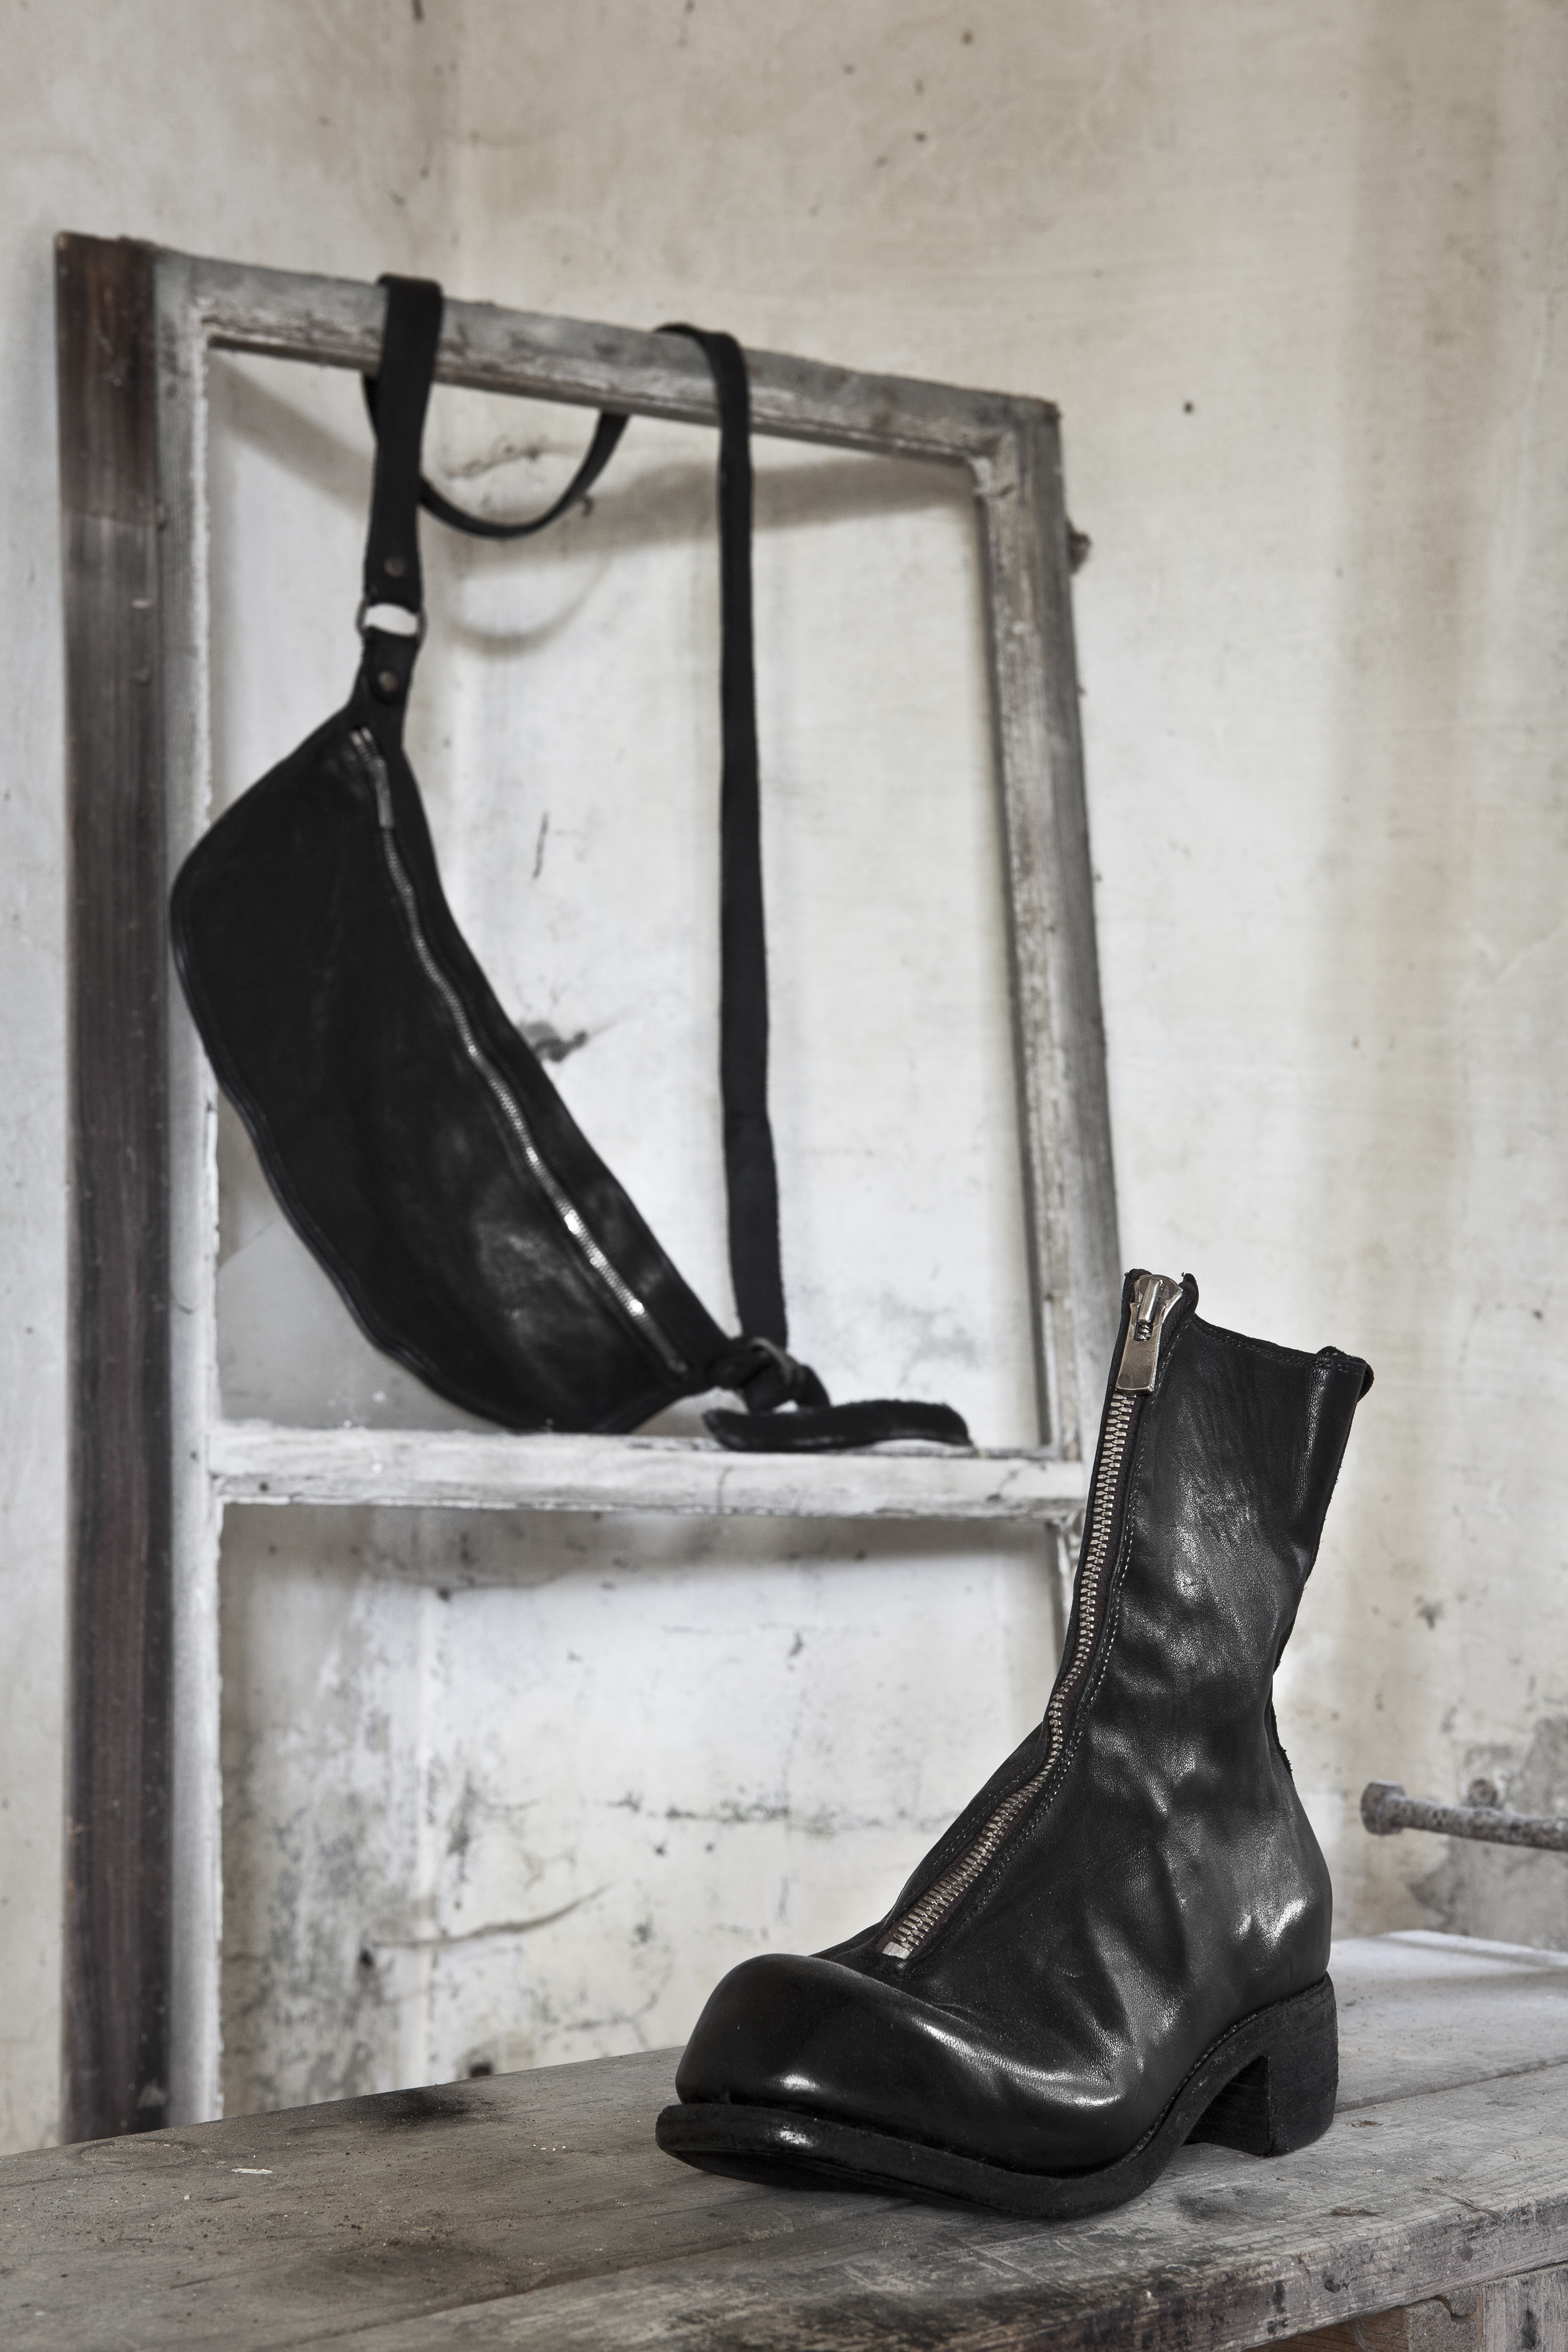 guidi  photography by philipp altheimer | S/TUDIO